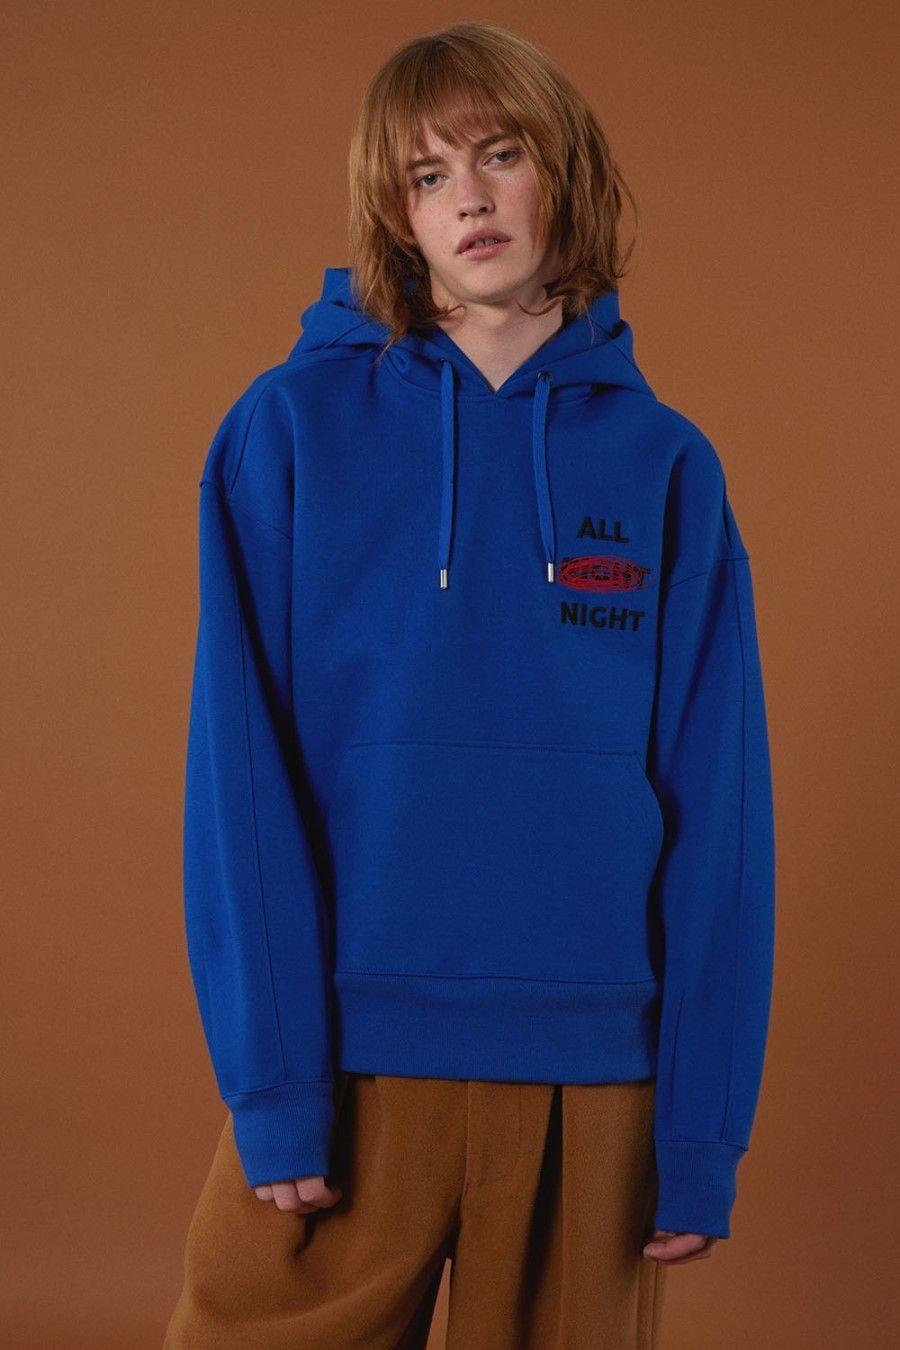 Blue fw15 collection all night hoodie aderadererrorblue mio blue fw15 collection all night hoodie aderadererrorblue gumiabroncs Images